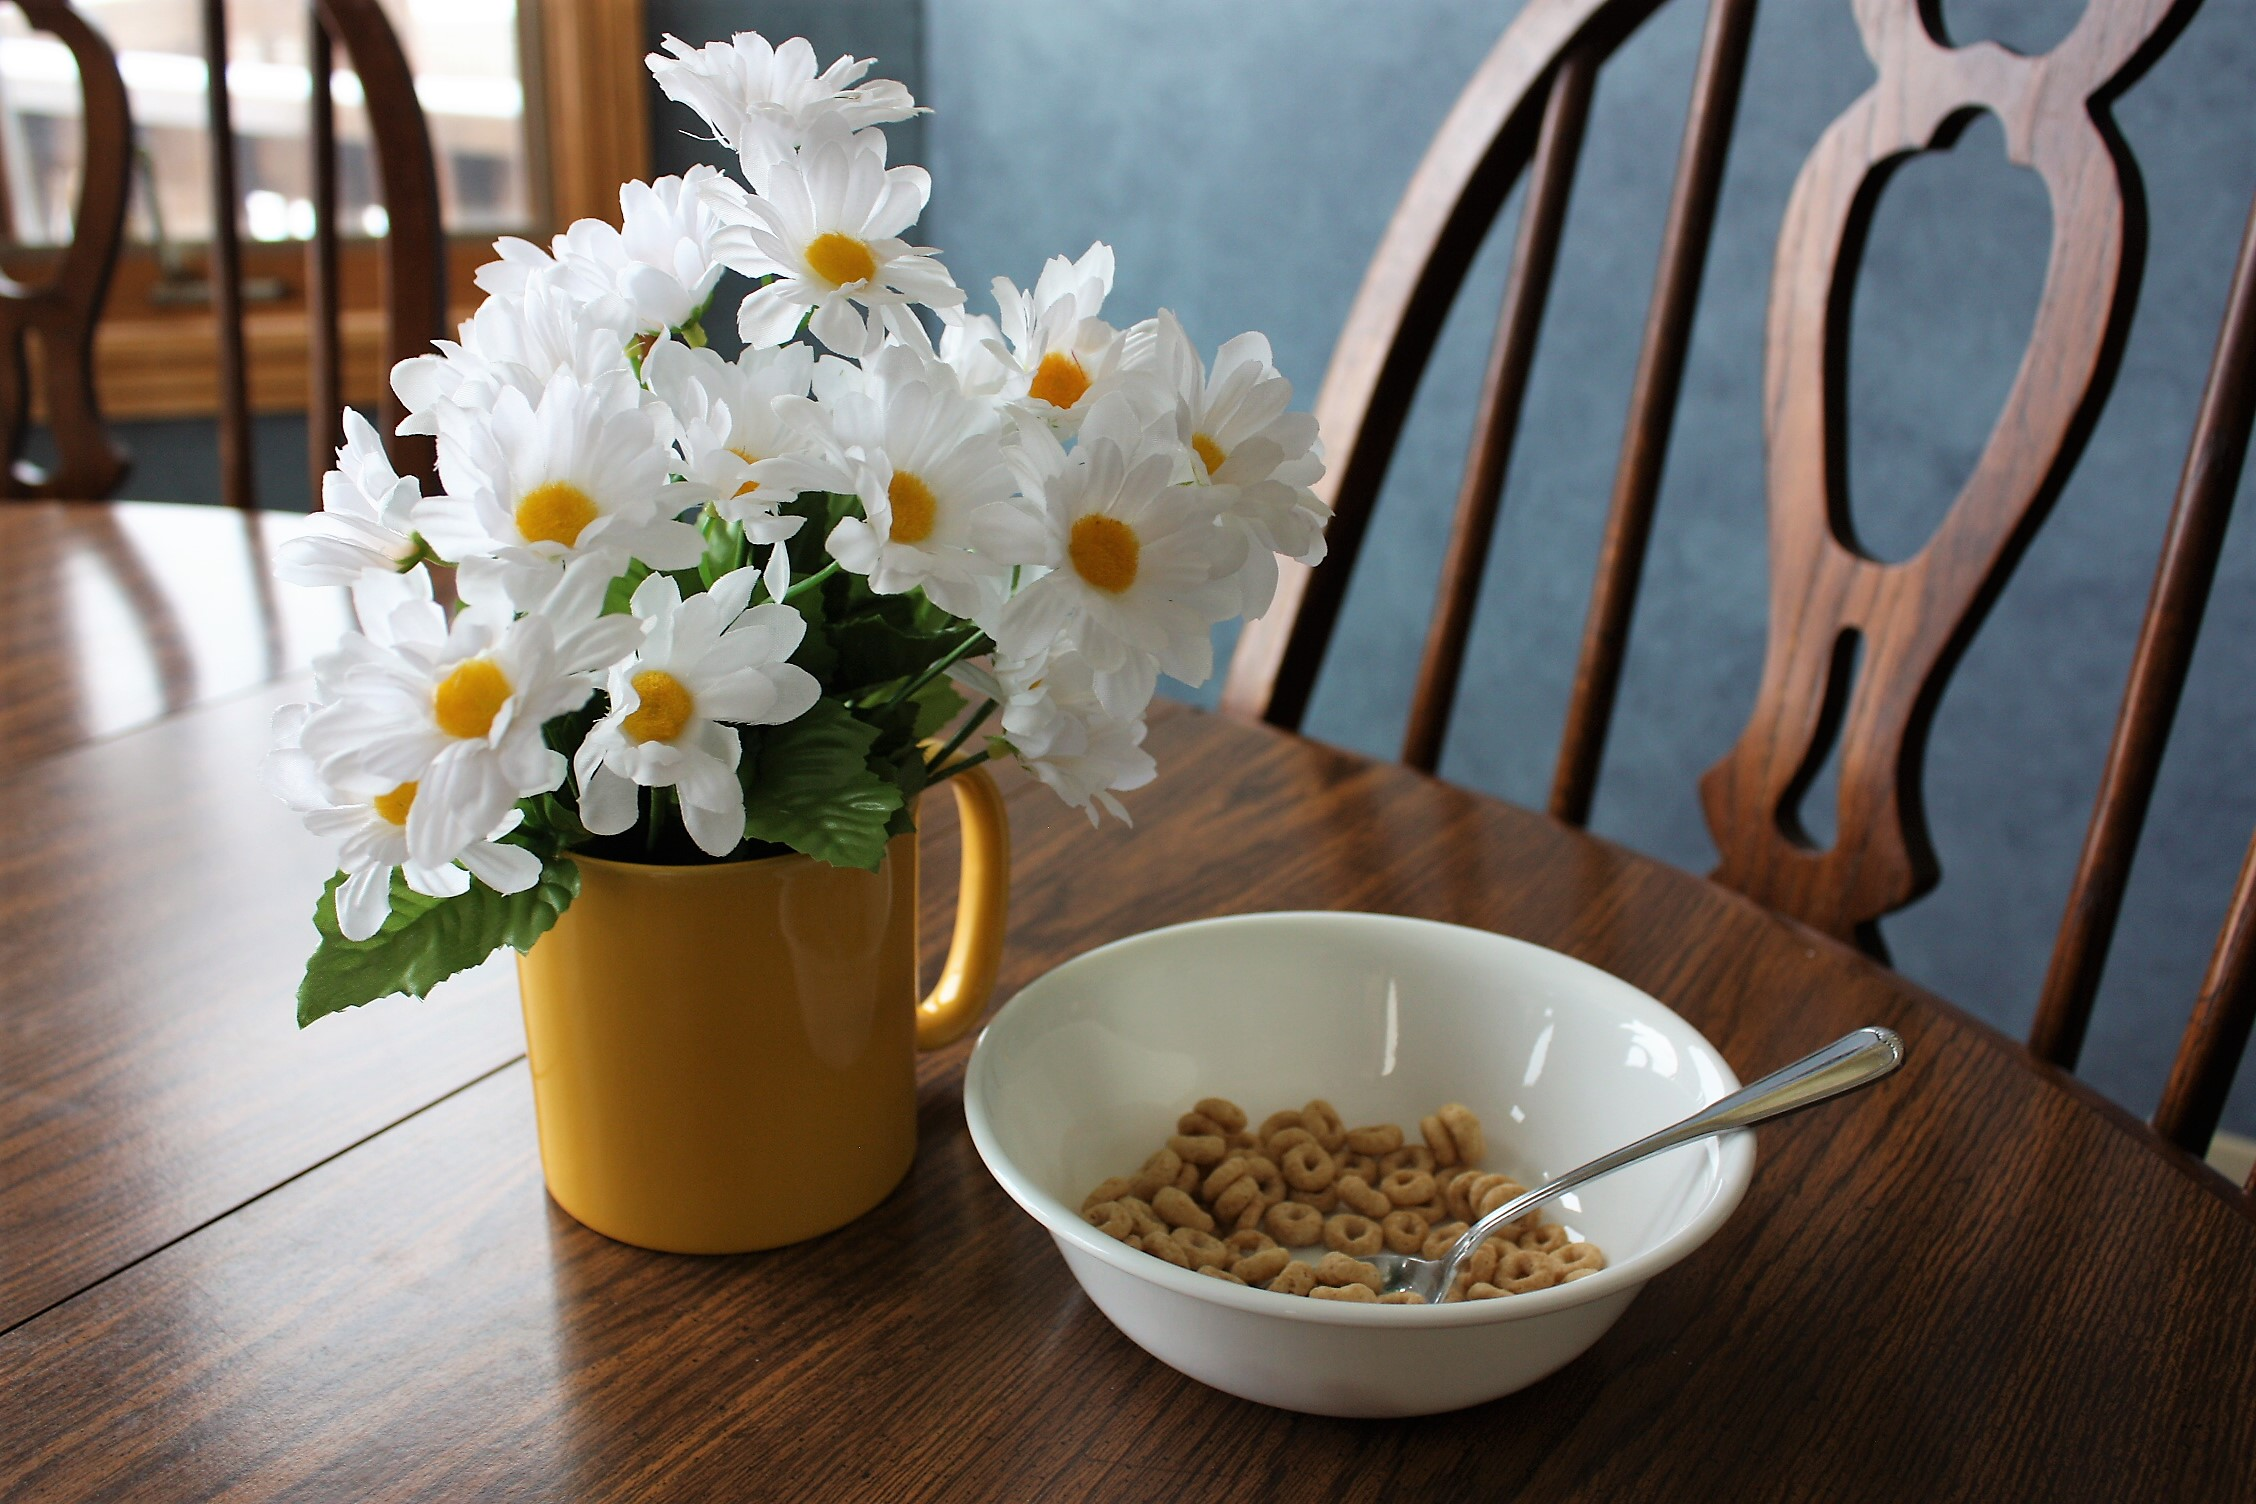 Daisies and Cereal 005c